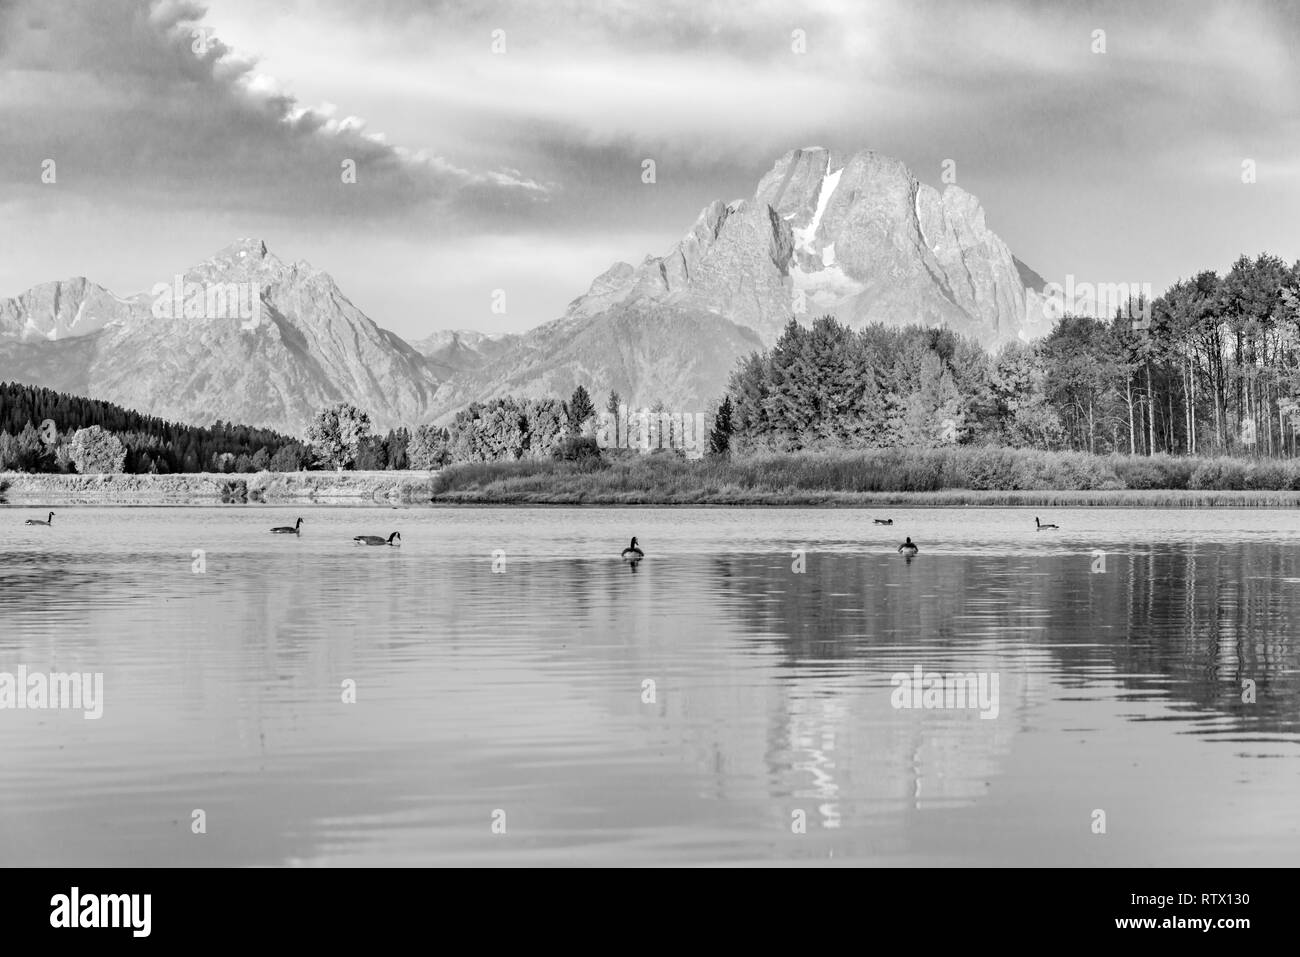 Black and white, Mount Moran reflected in Snake River, morning atmosphere at Oxbow Bend, Autumn trees and Grand Teton Range - Stock Image